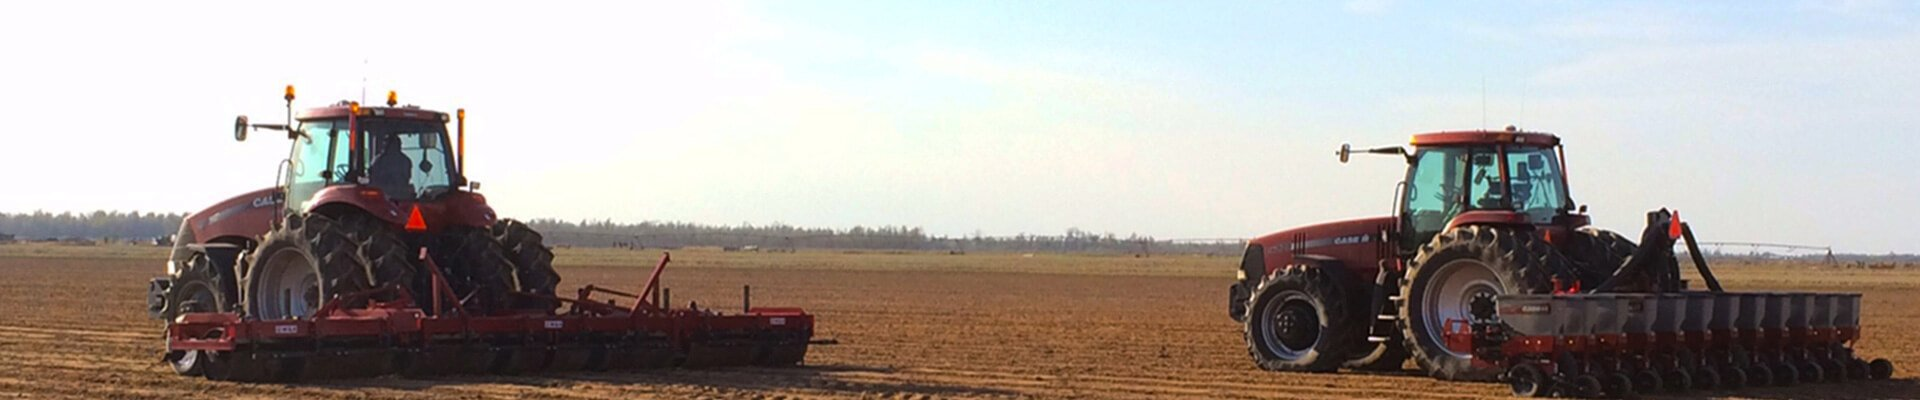 Two tractors working dirt in a field.